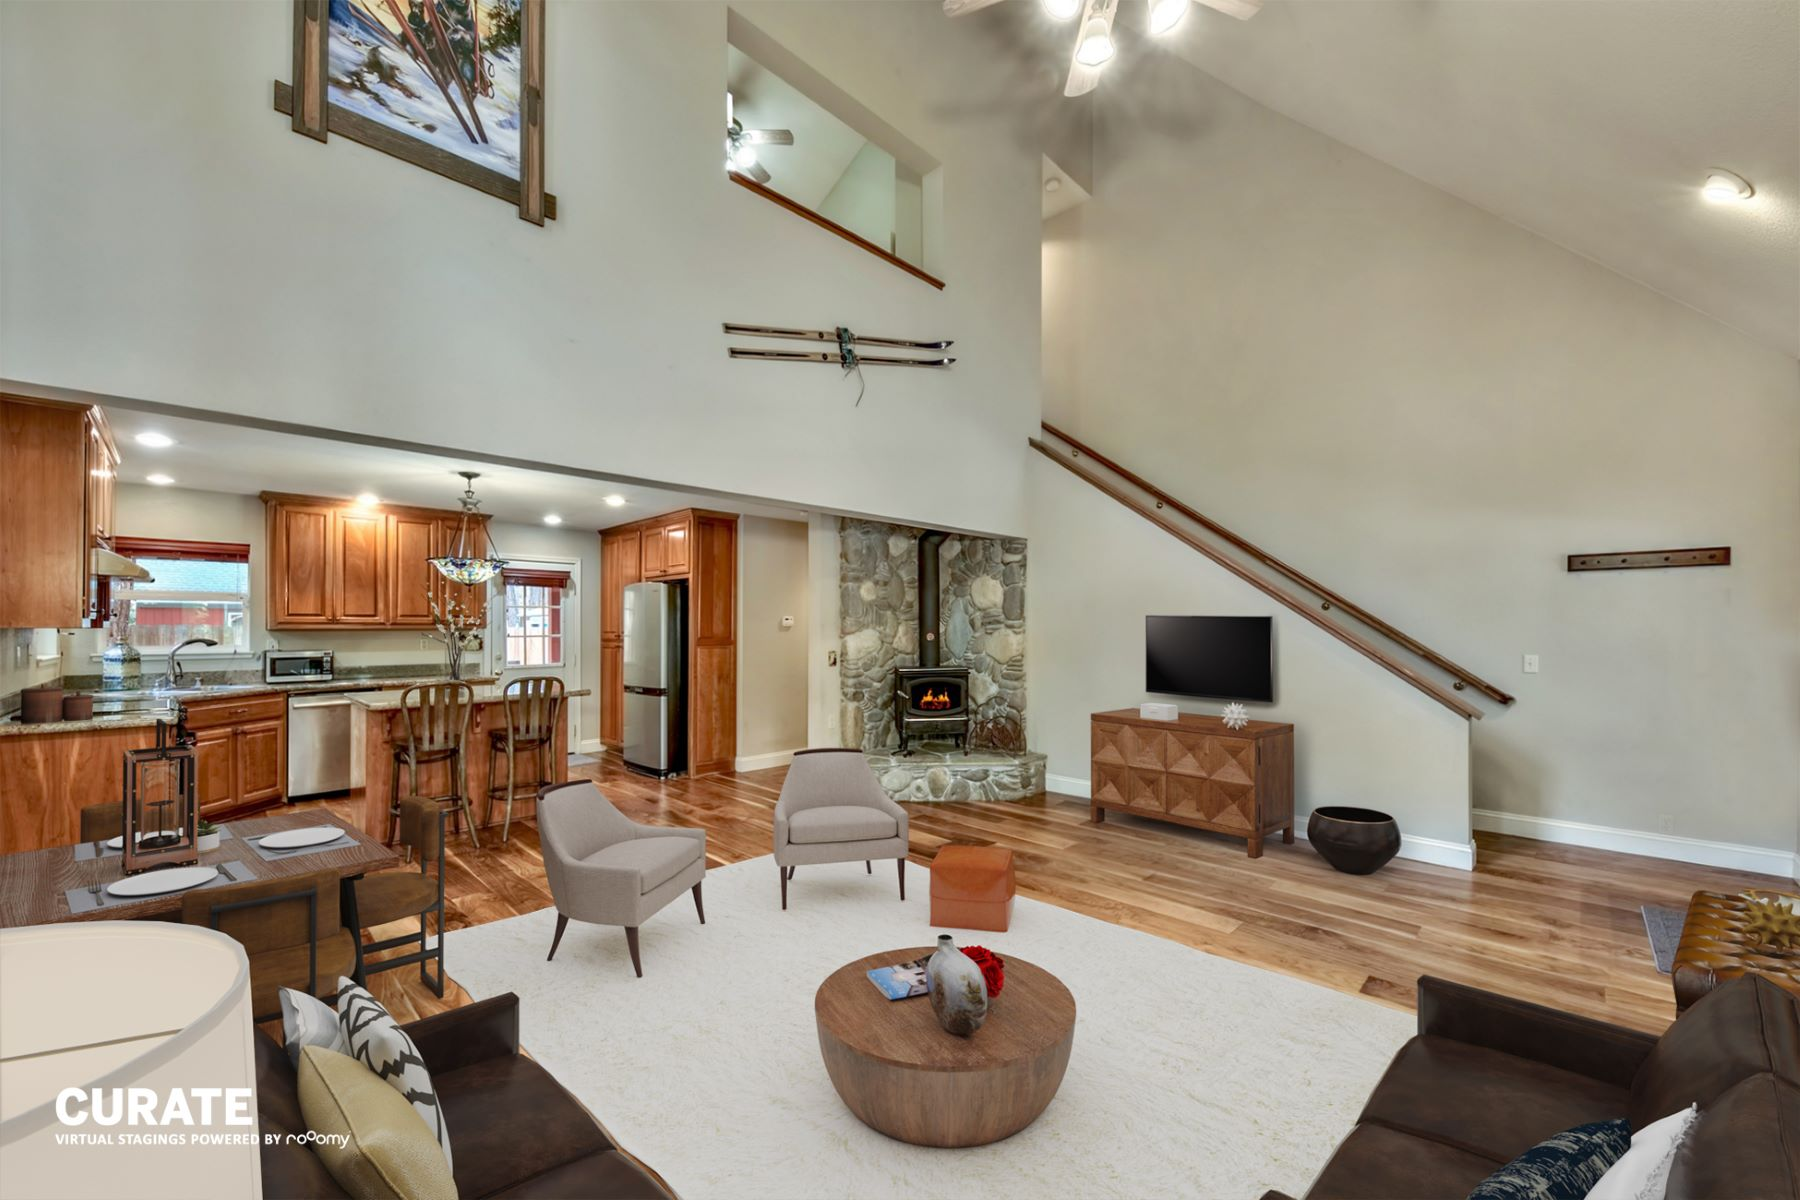 Additional photo for property listing at 954 Los Angeles Ave, South Lake Tahoe, CA 96150 954 Los Angeles Ave 南太浩湖, 加利福尼亚州 96150 美国